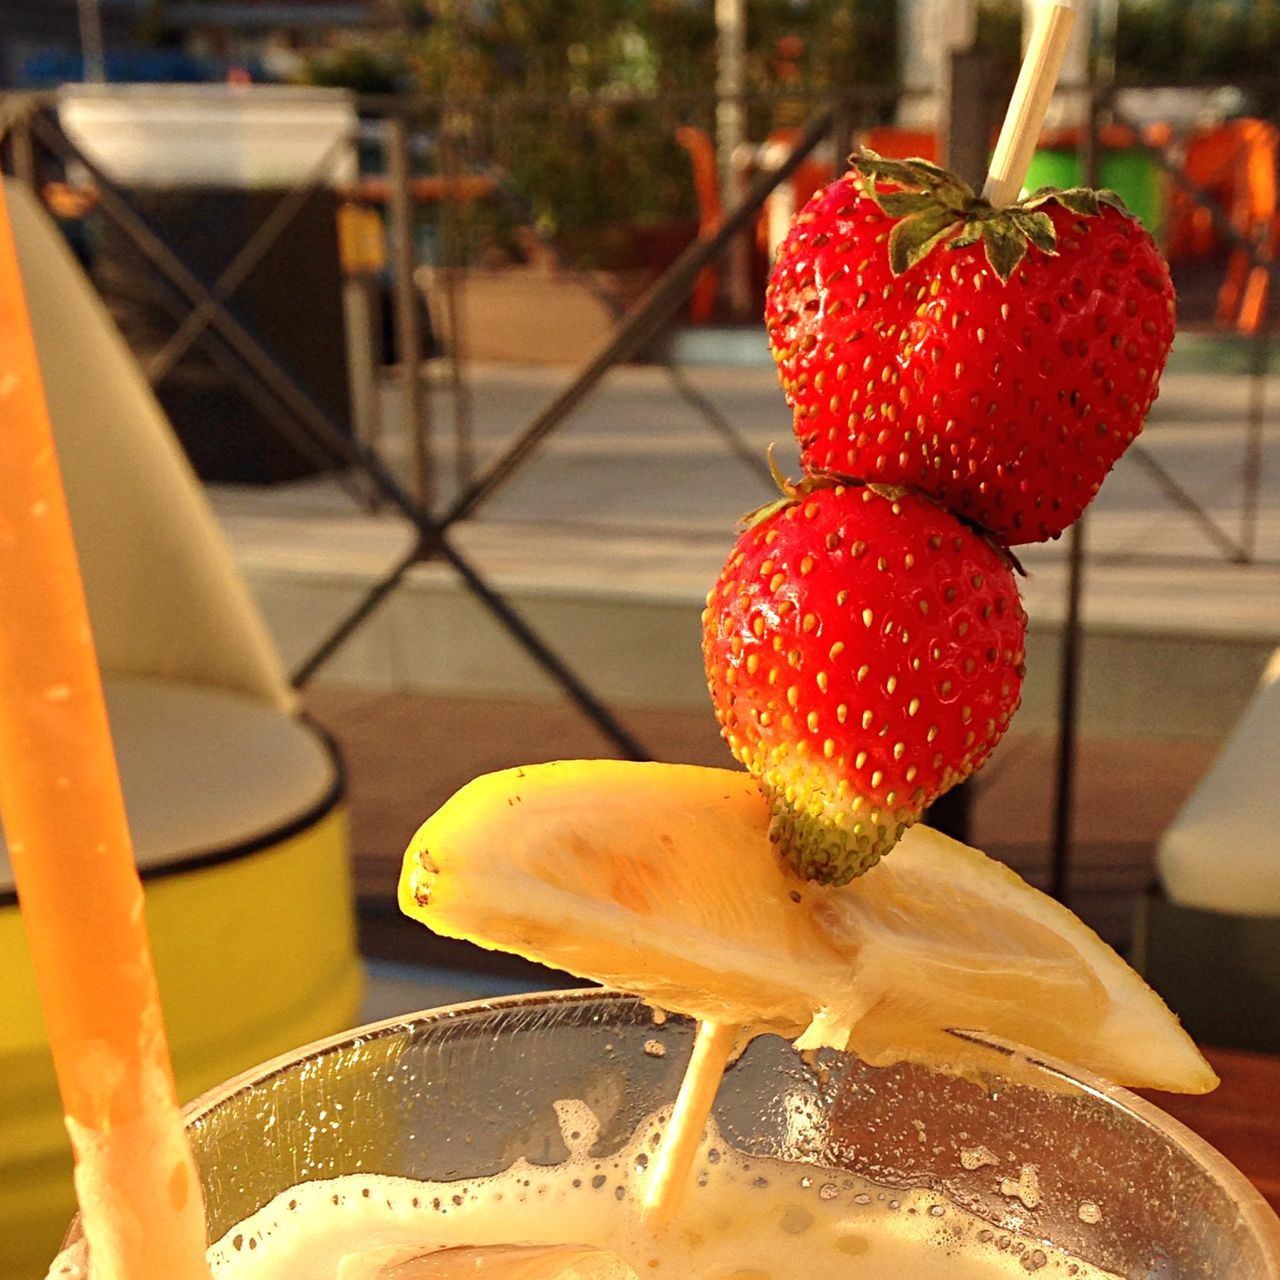 Close-Up Of Strawberries And Sweet Lime On Toothpick In Glass